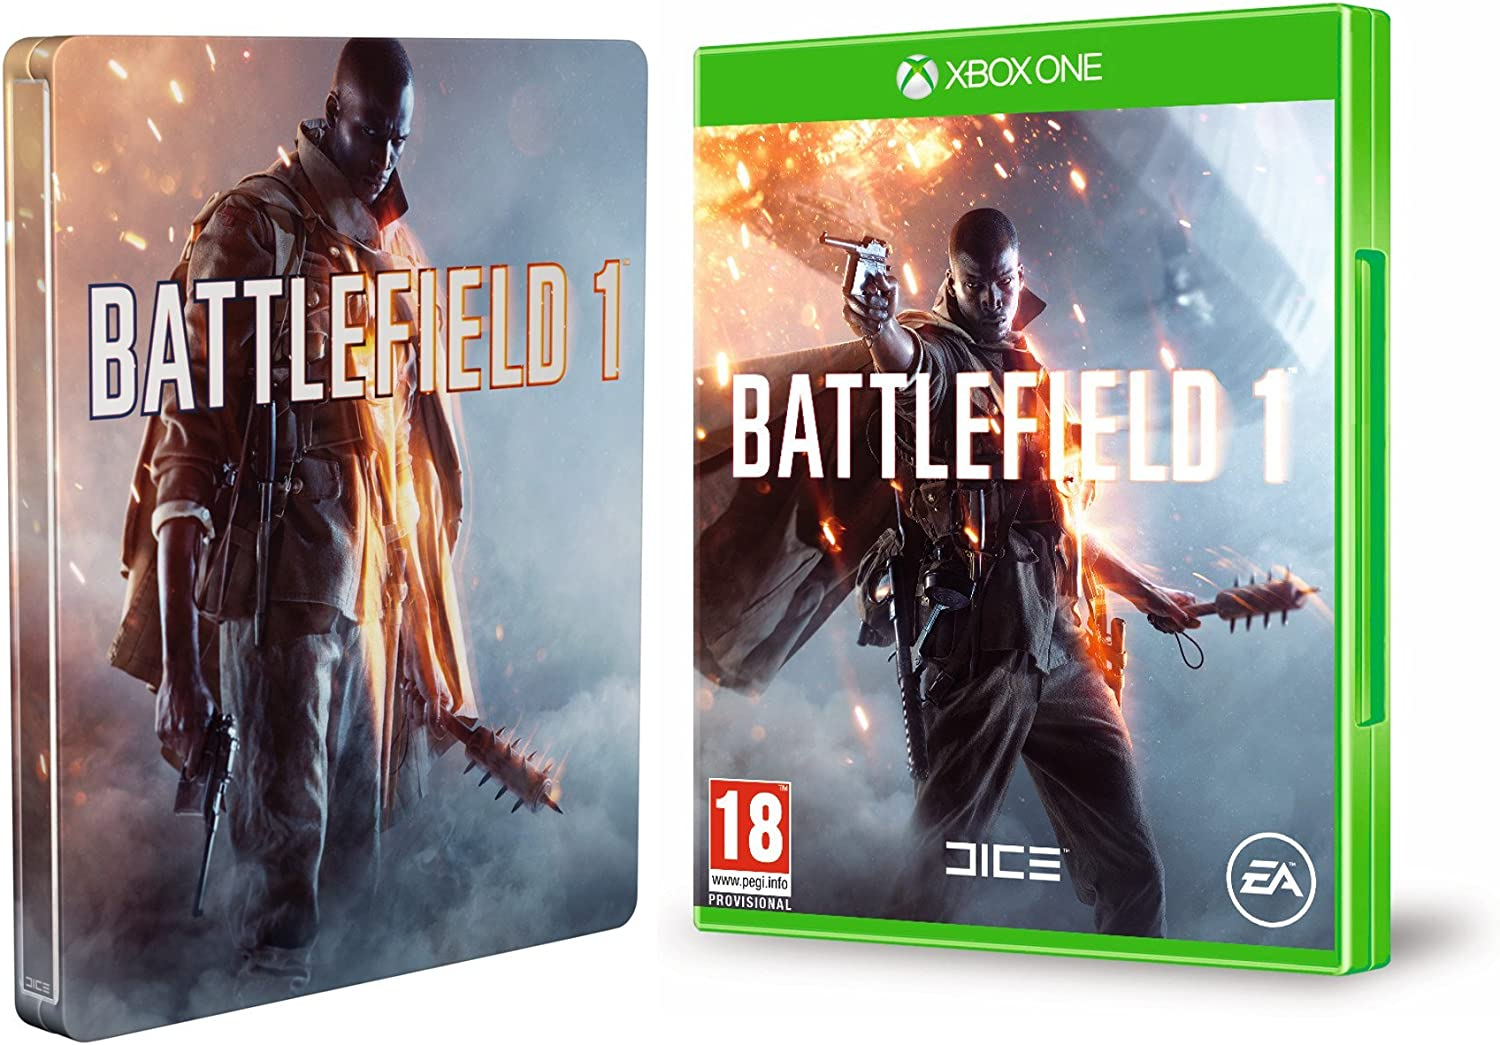 Battlefield 1 + Steelbook (Exclusivo en Amazon): Amazon.es: Videojuegos